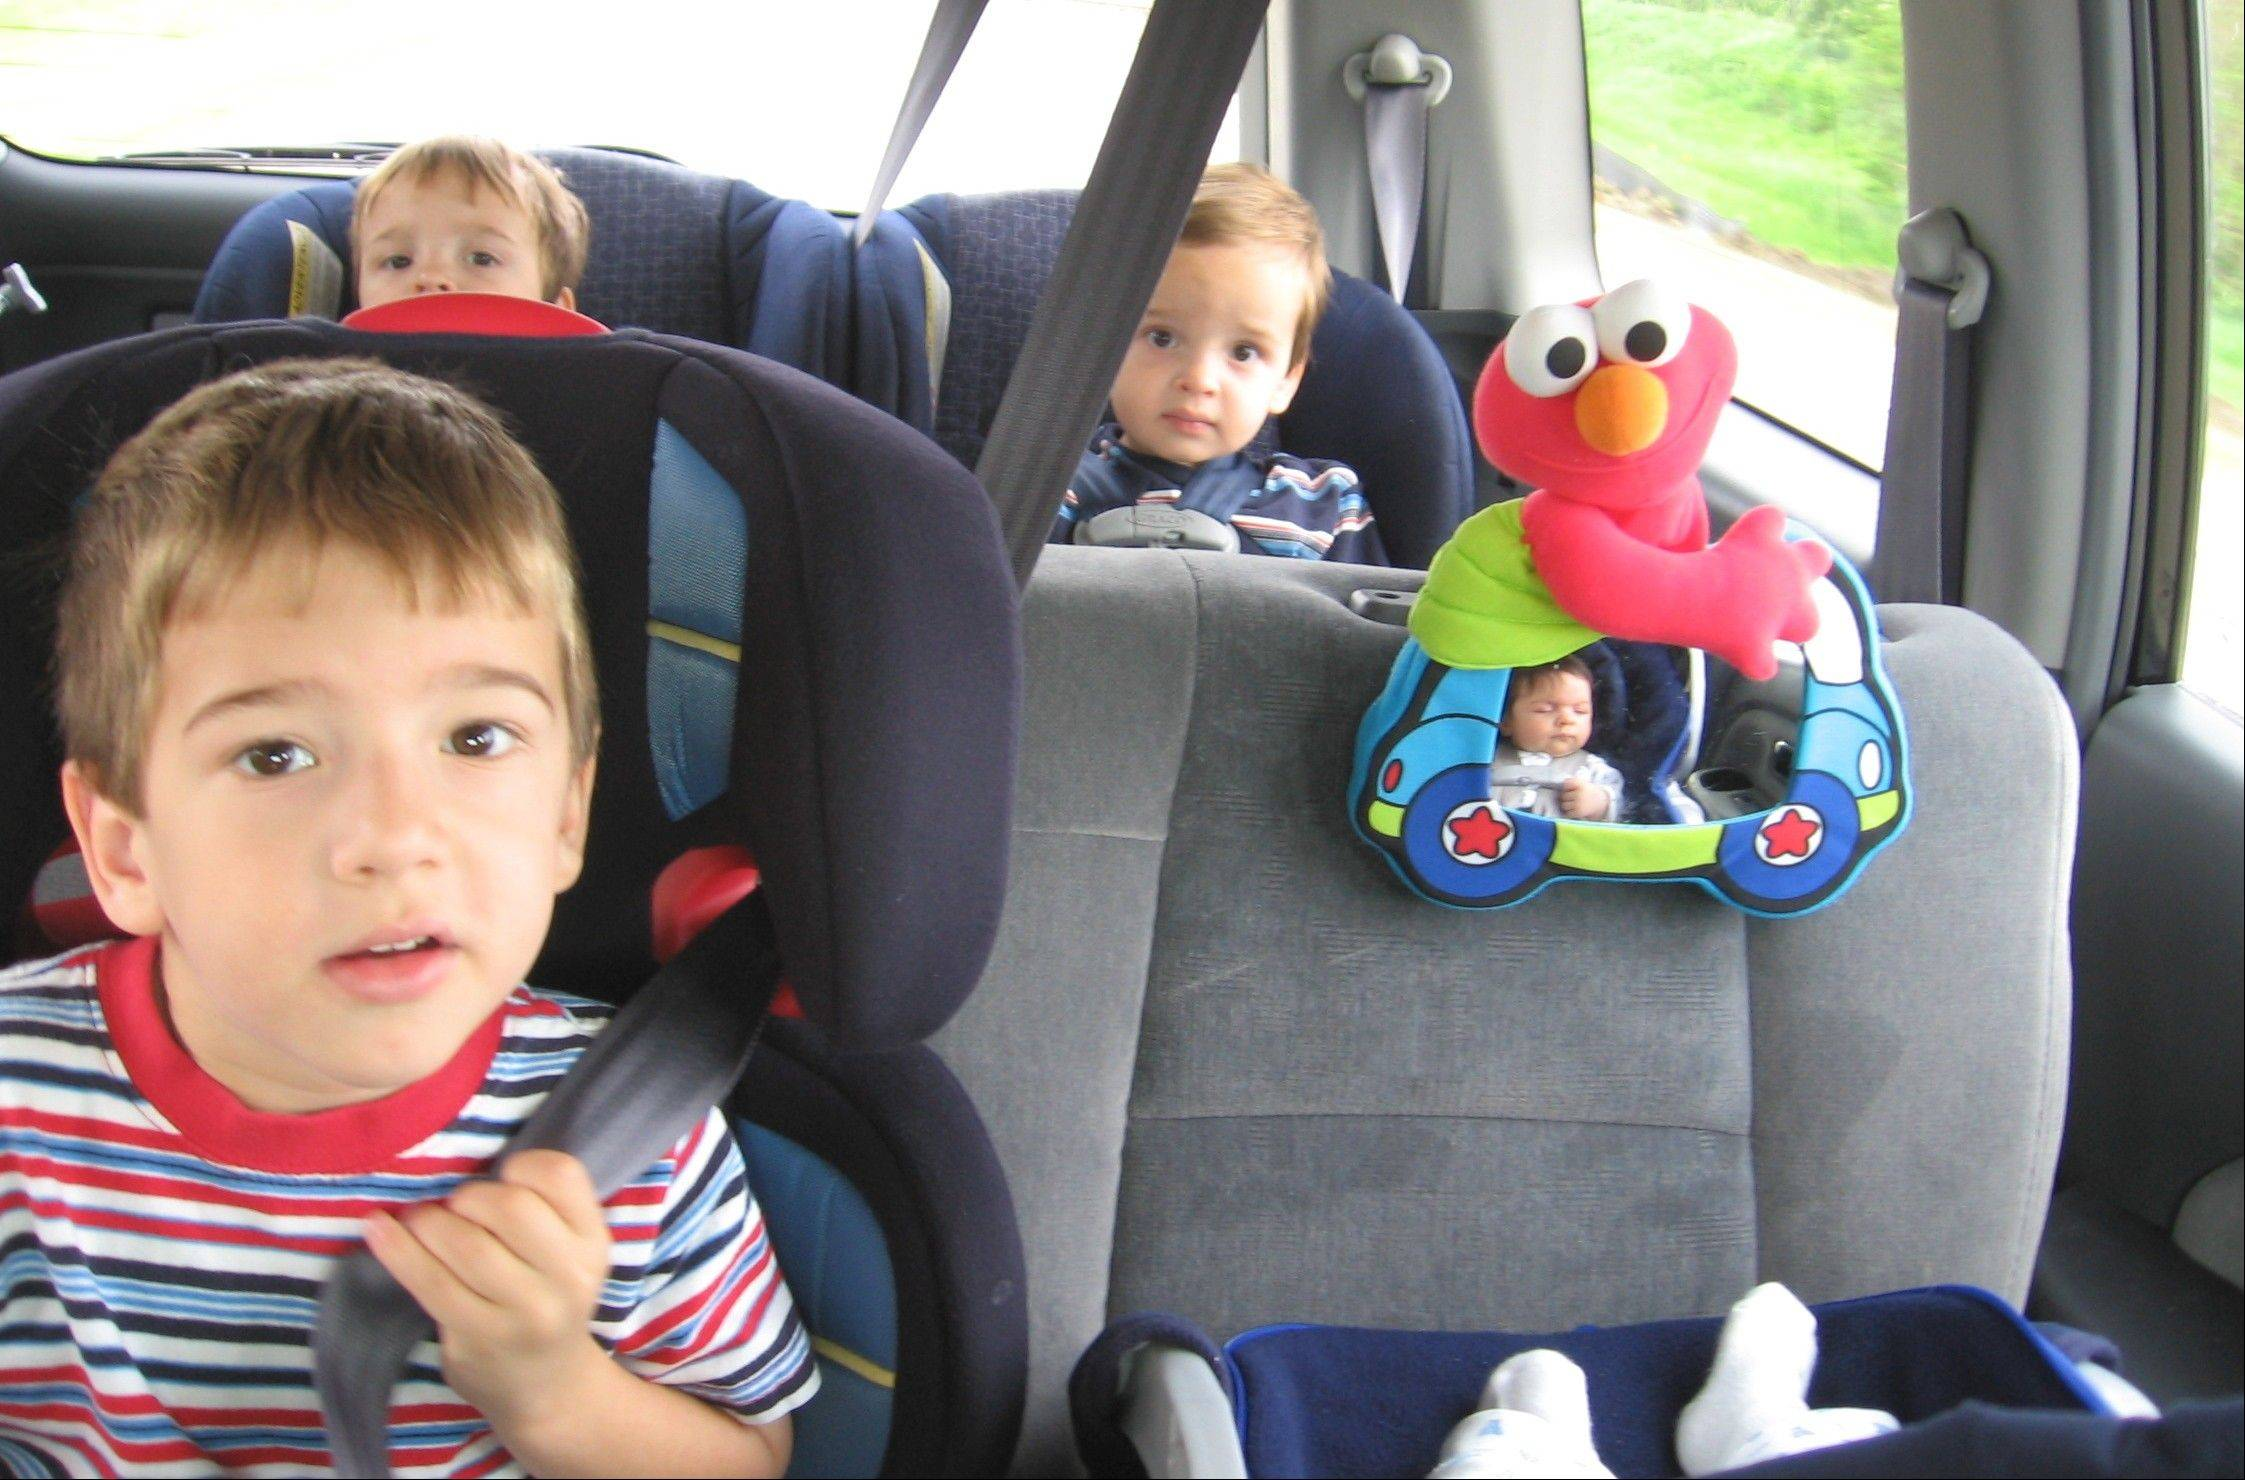 The Flais kids, including 2-year-old twins (rear), a 4-year-old and 2-month-old infant, hit the road in 2006. Family road trips can be accomplished without too much hassle, pediatrician mom Shelly Flais said.